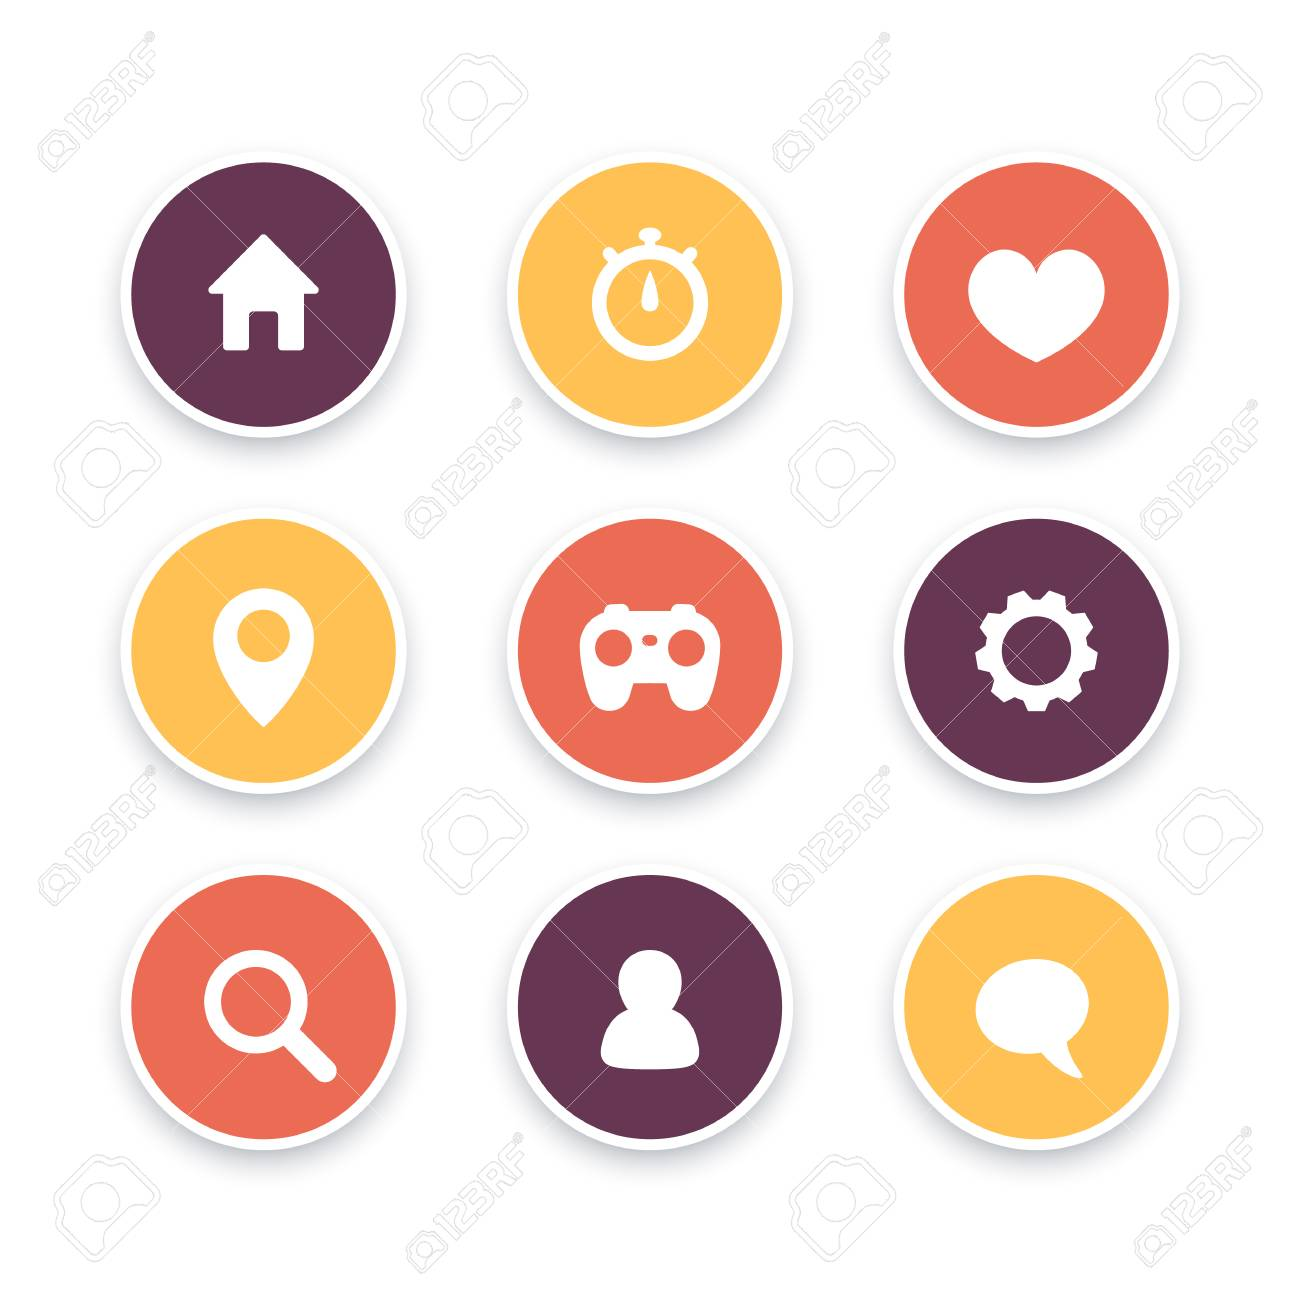 Basic web icons, settings, login icon, home, search, favourite,